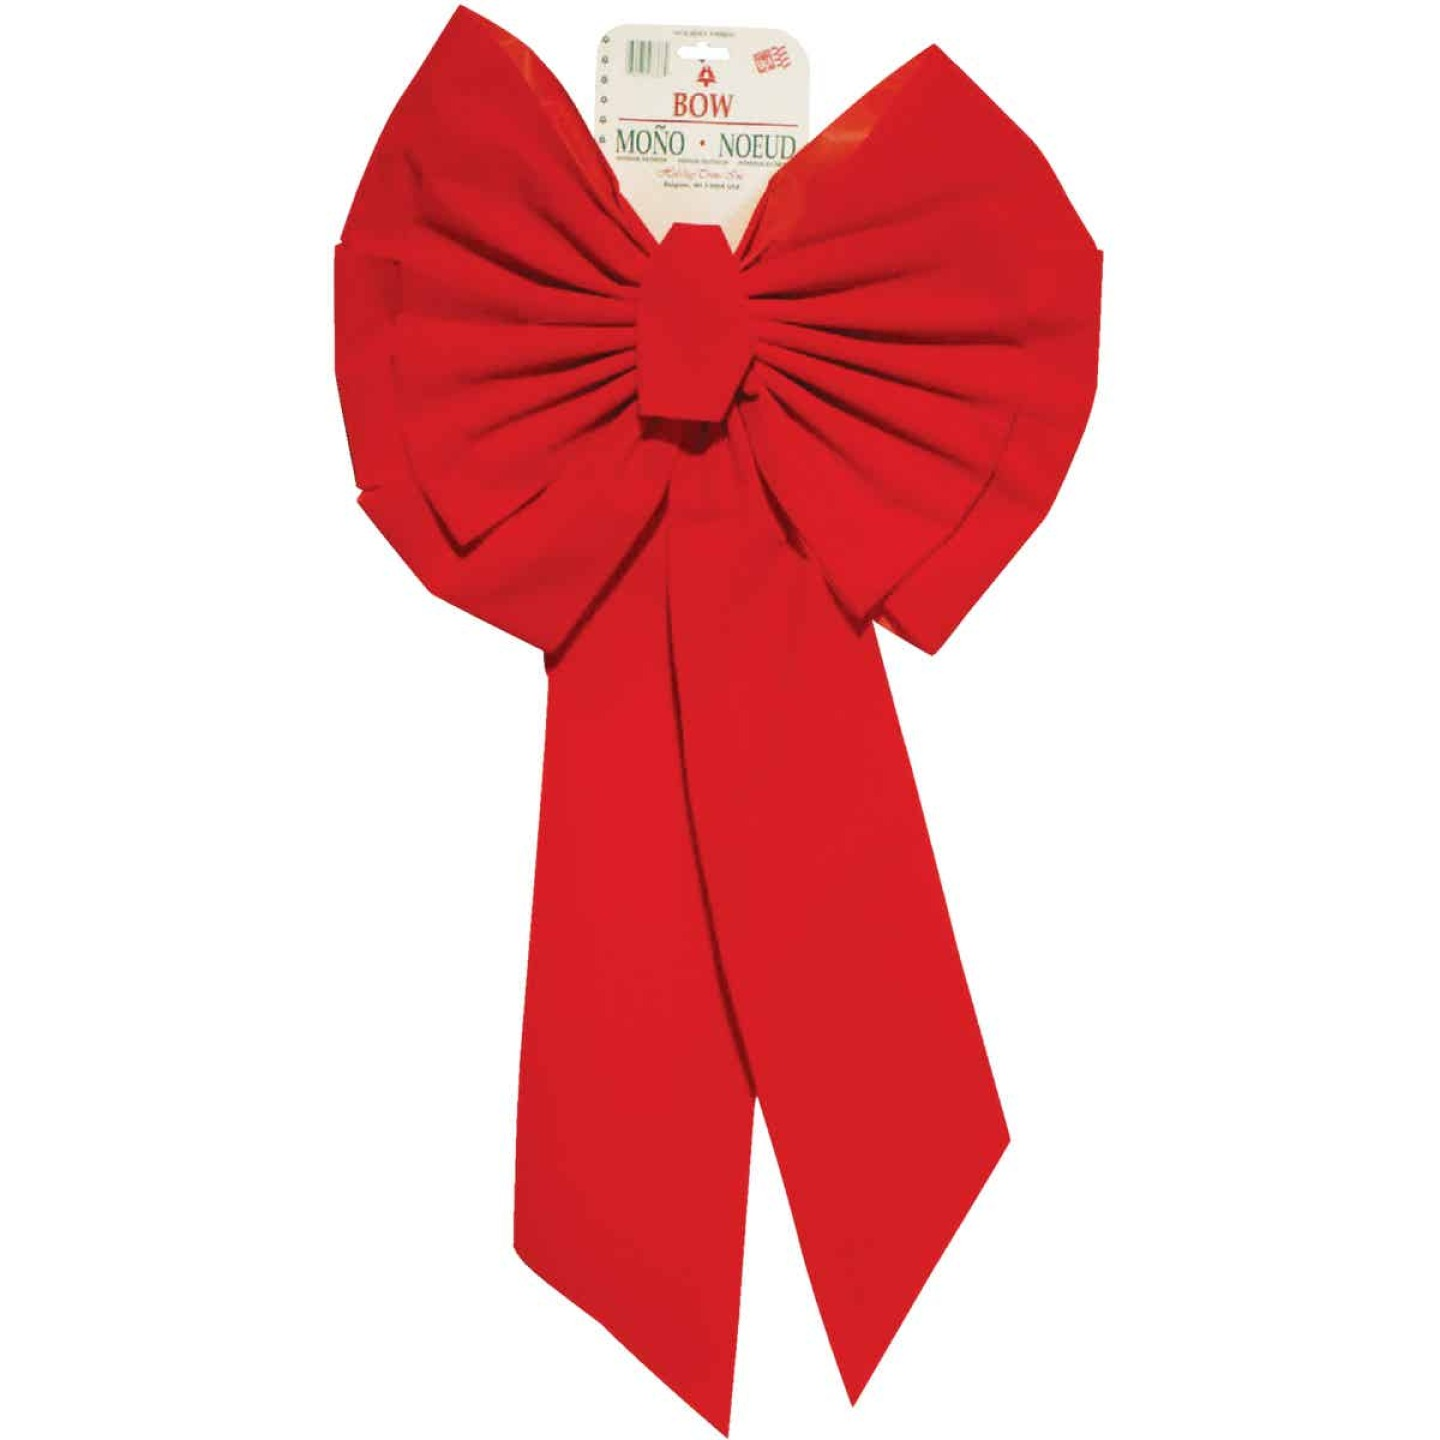 Holiday Trims 11-Loop 18 In. W. x 35 In. L. Red Velvet Christmas Bow Image 1